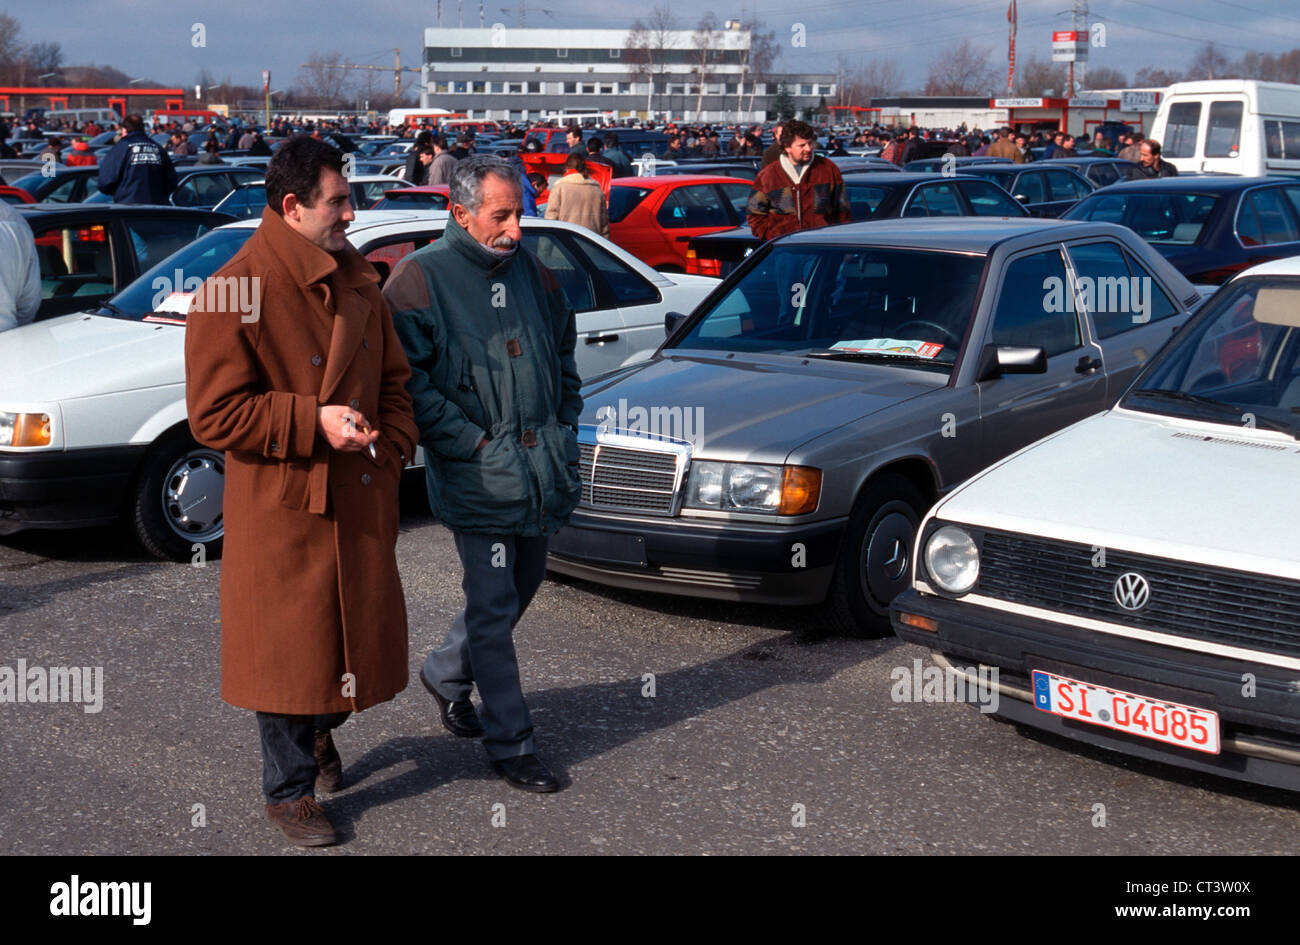 Private Car Market in Essen-Bergeborbeck Stock Photo